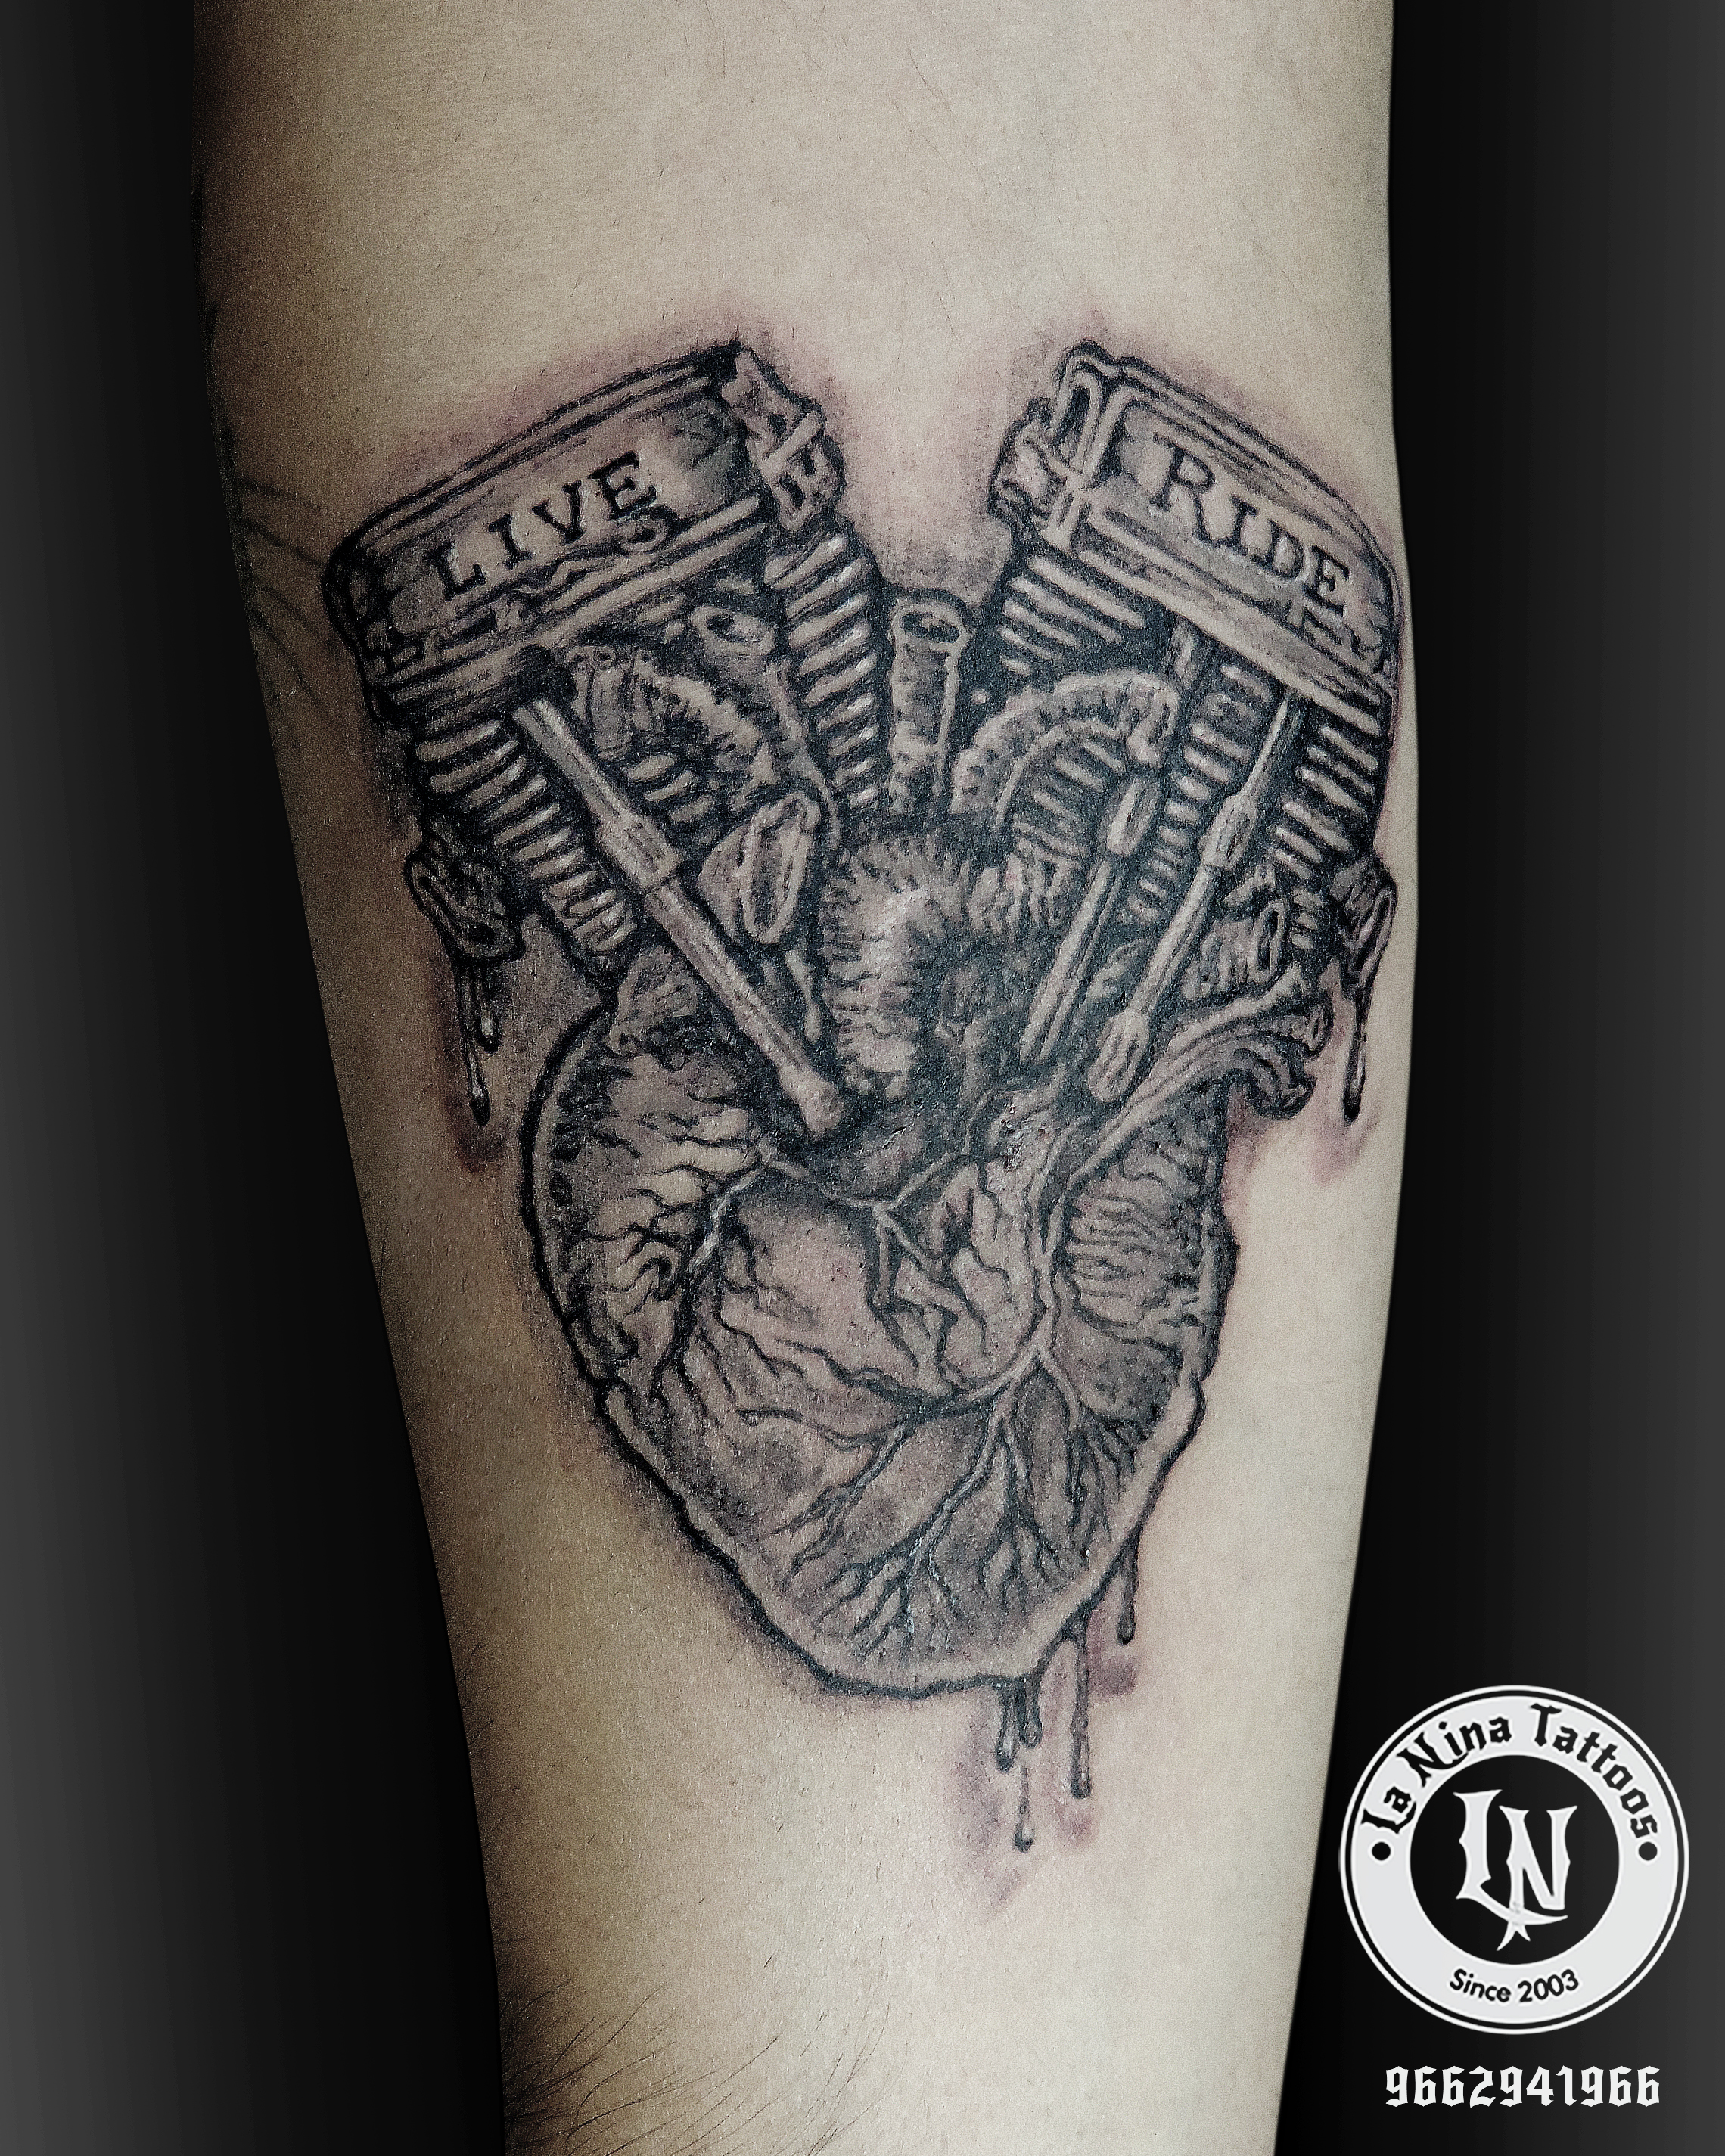 best-tattoo-artist-la-nina-tattoo-custom-heart-biker-tattoo-gujarat-india-black-poision-1920-aliens-